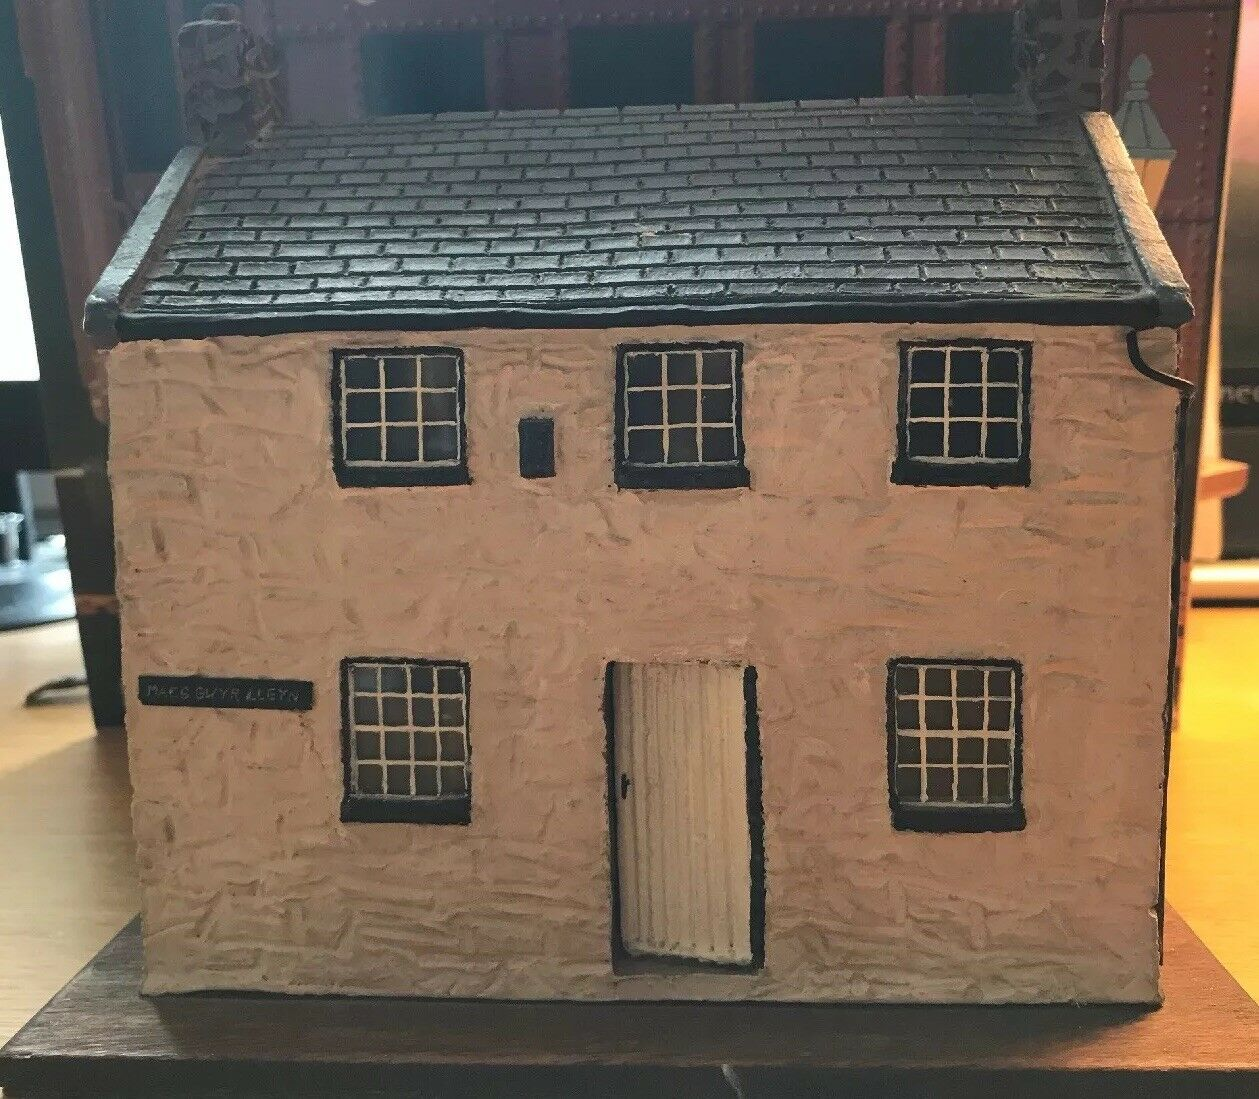 Diorama 1 50th Scale Welsh Cottage Height 6.5 Inches Clay Expert Construction